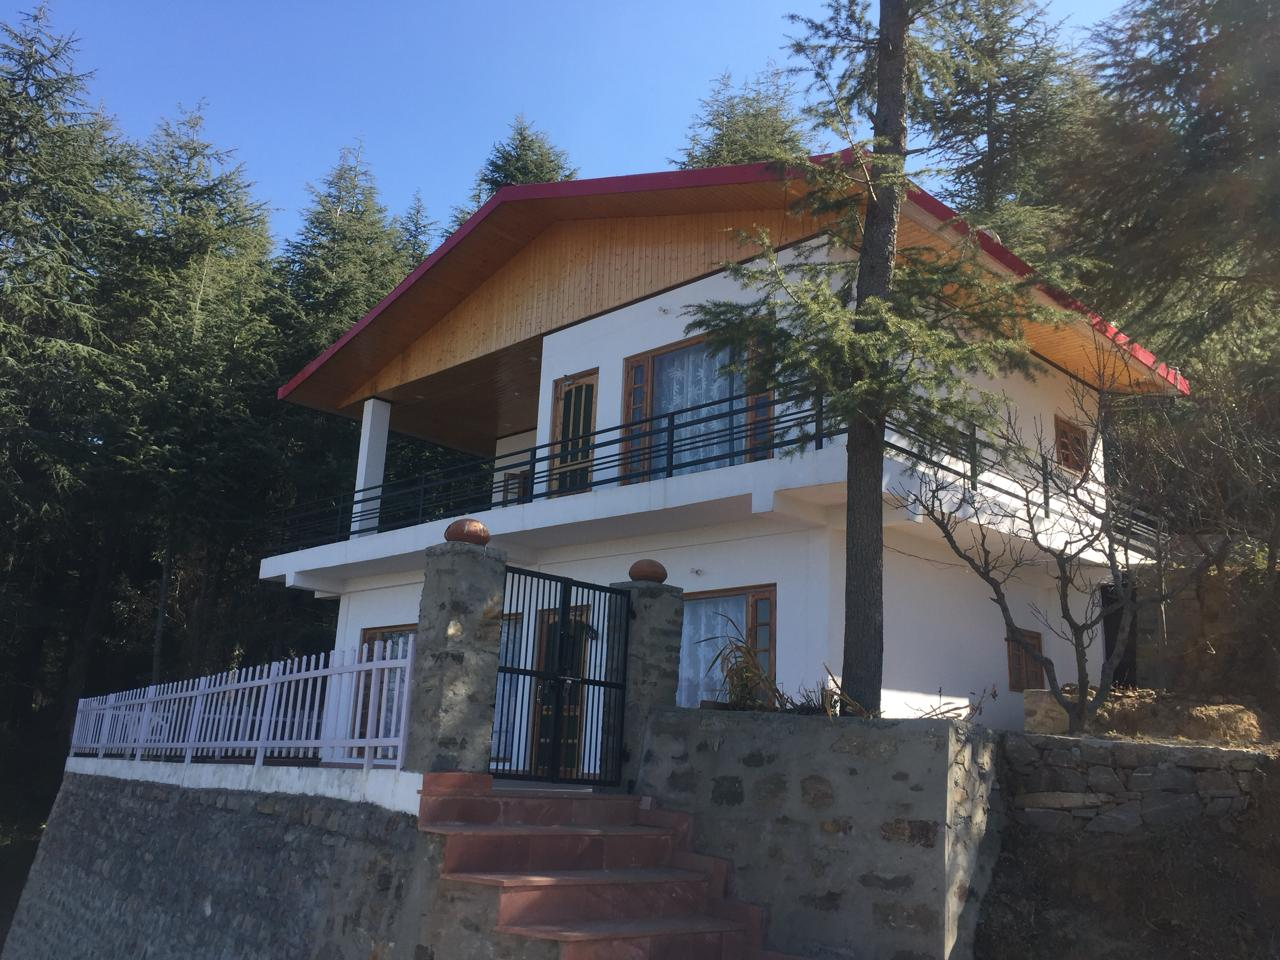 3 Bhk Cottage for Sale at Rajgarh Himachal Pradesh —- Drive in —- Plot Area – 275 Sqy — Covered Area – 2100 Sqf — Distance From Solan – 49 Km —- Price – 69 Lakhs